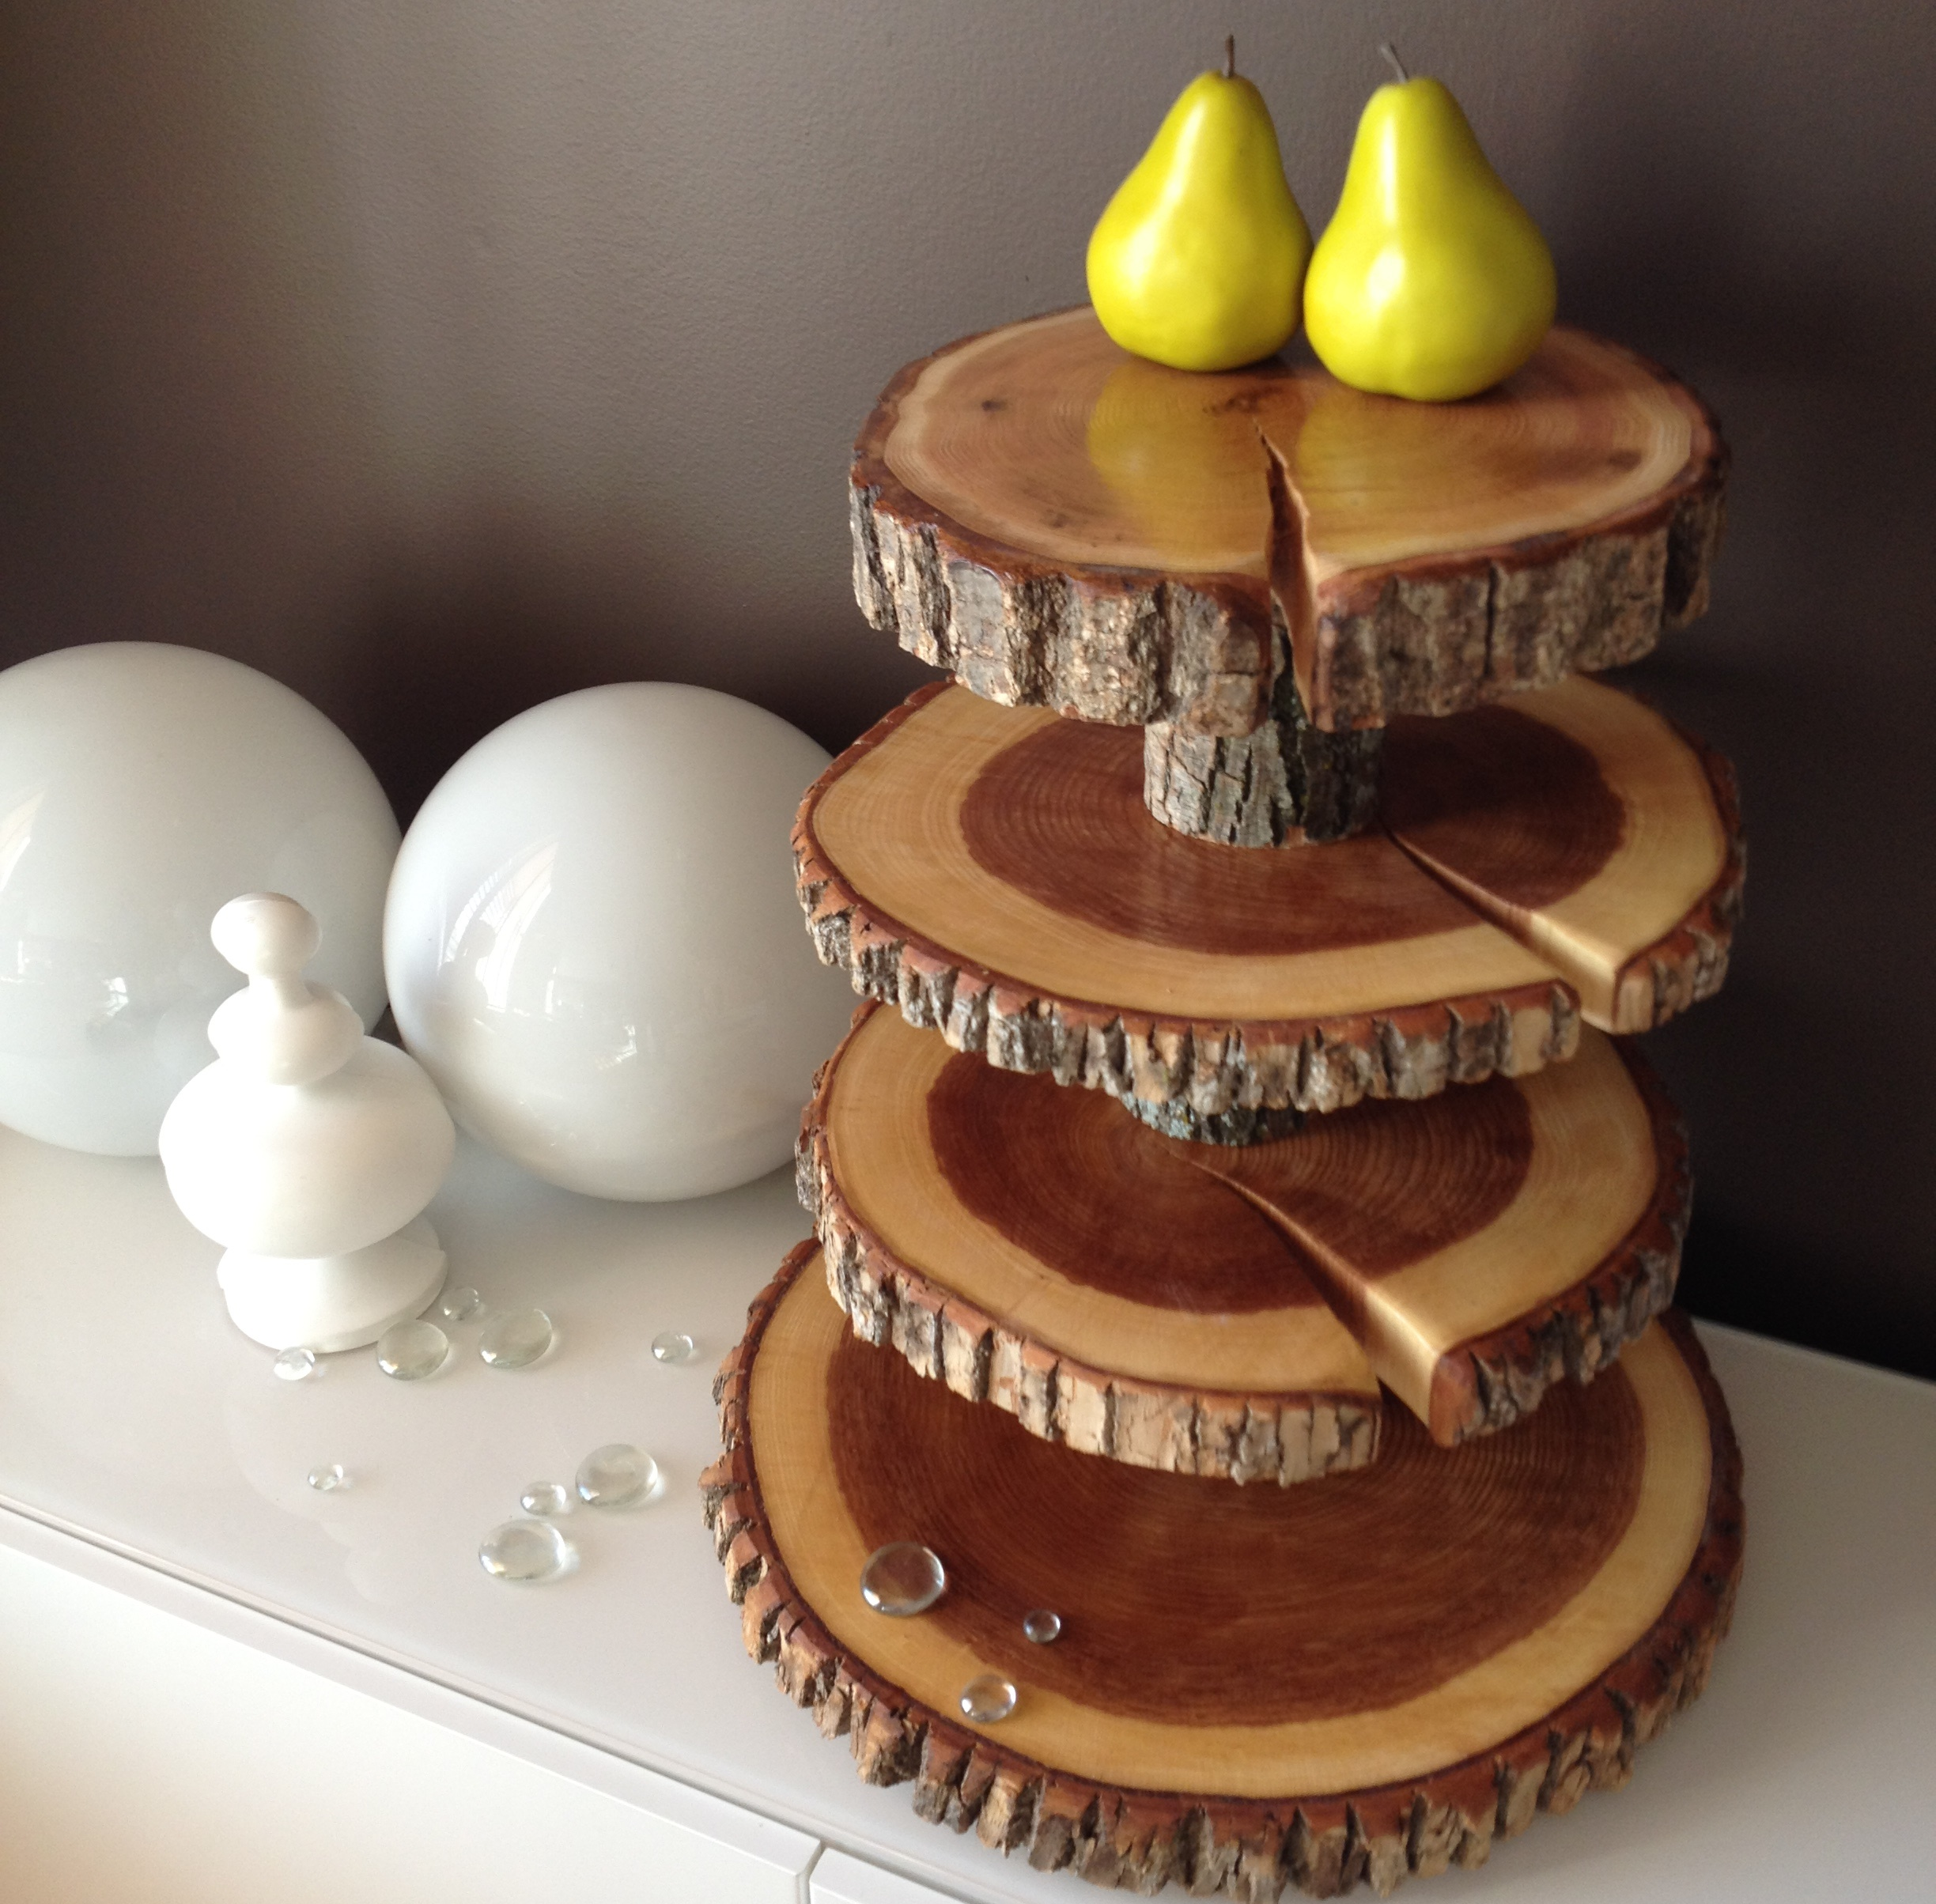 Wood Slice Wedding Cake Stands Rounds Stump Stand & Tiered Wooden Cake Stand - Wooden Designs